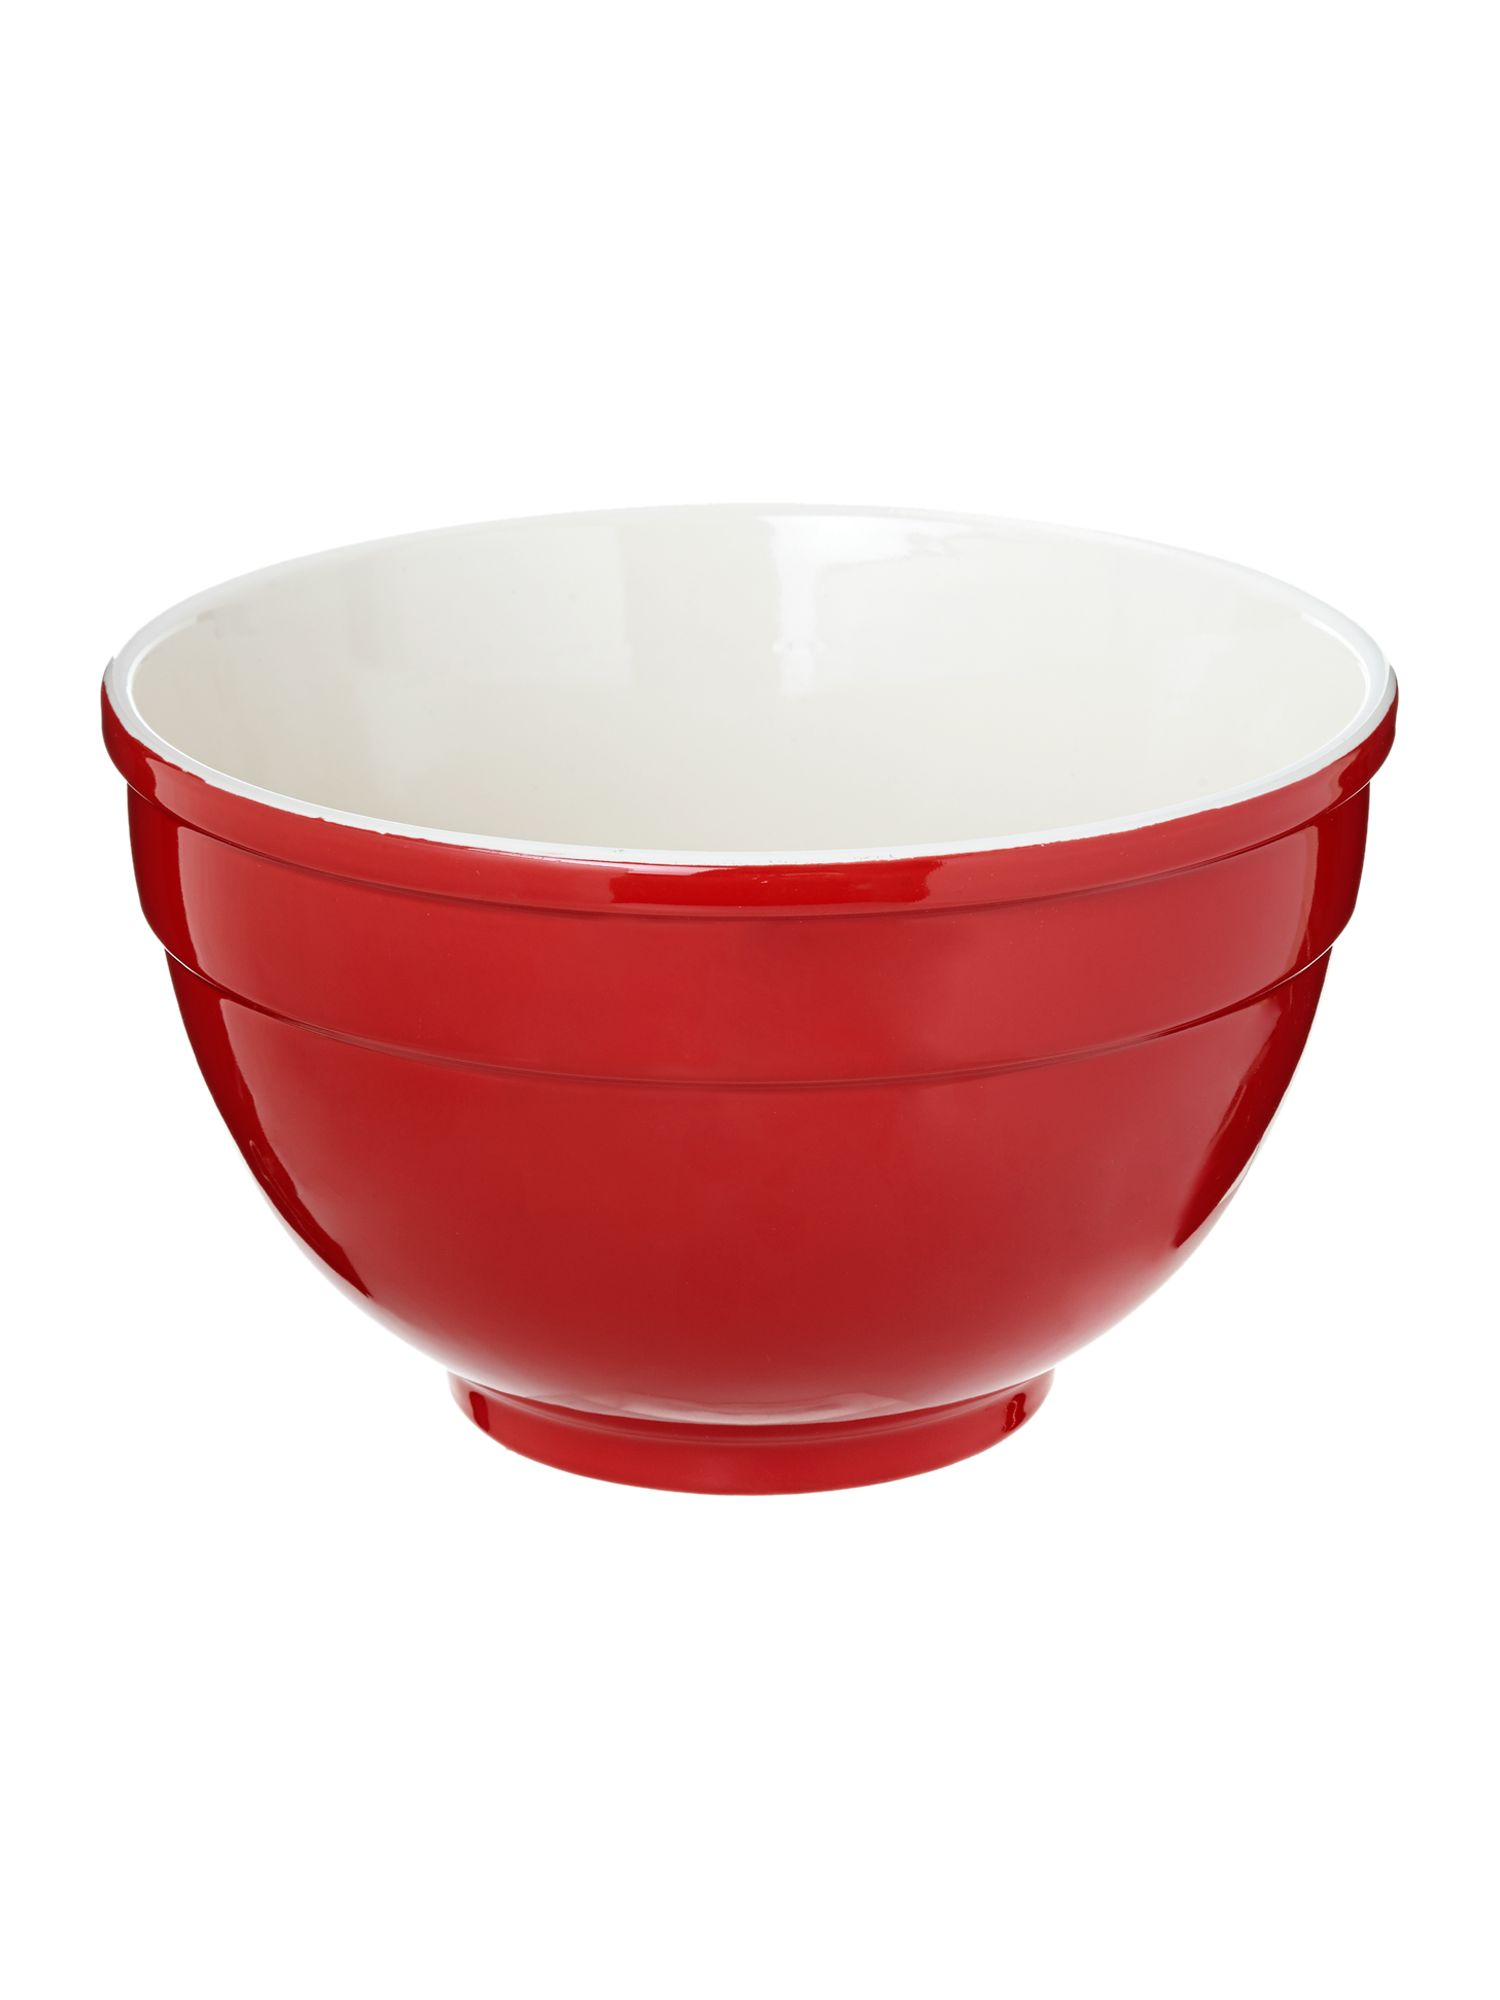 Maison large mixing bowl, red